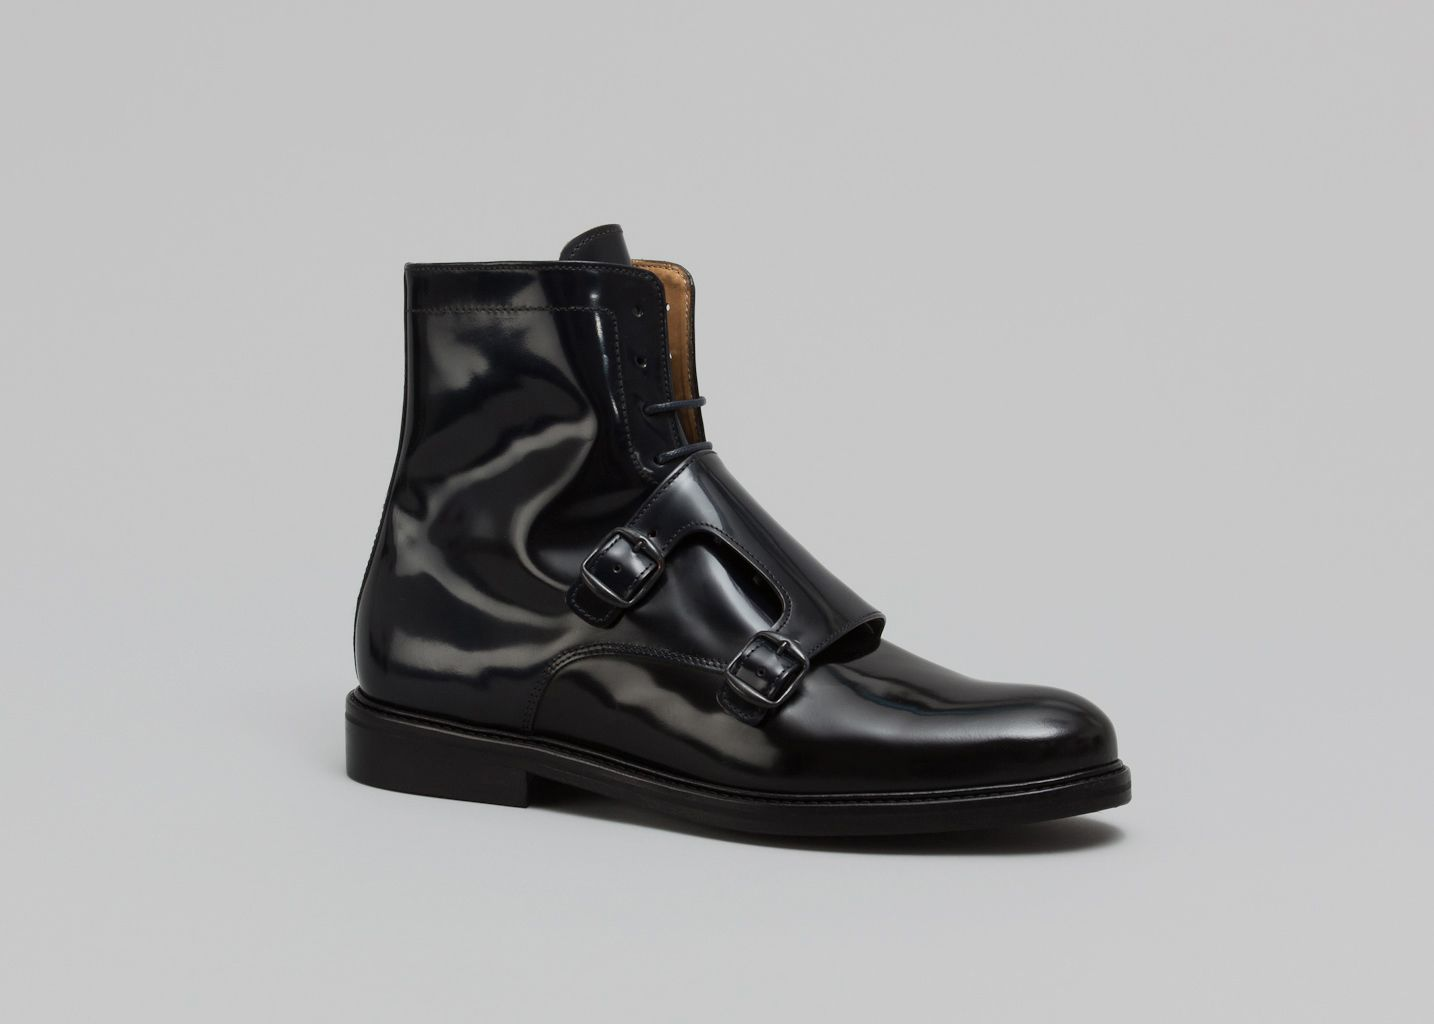 Bottines En Abrasivato Carven Noir L'exception Cuir rvxqPpnRr